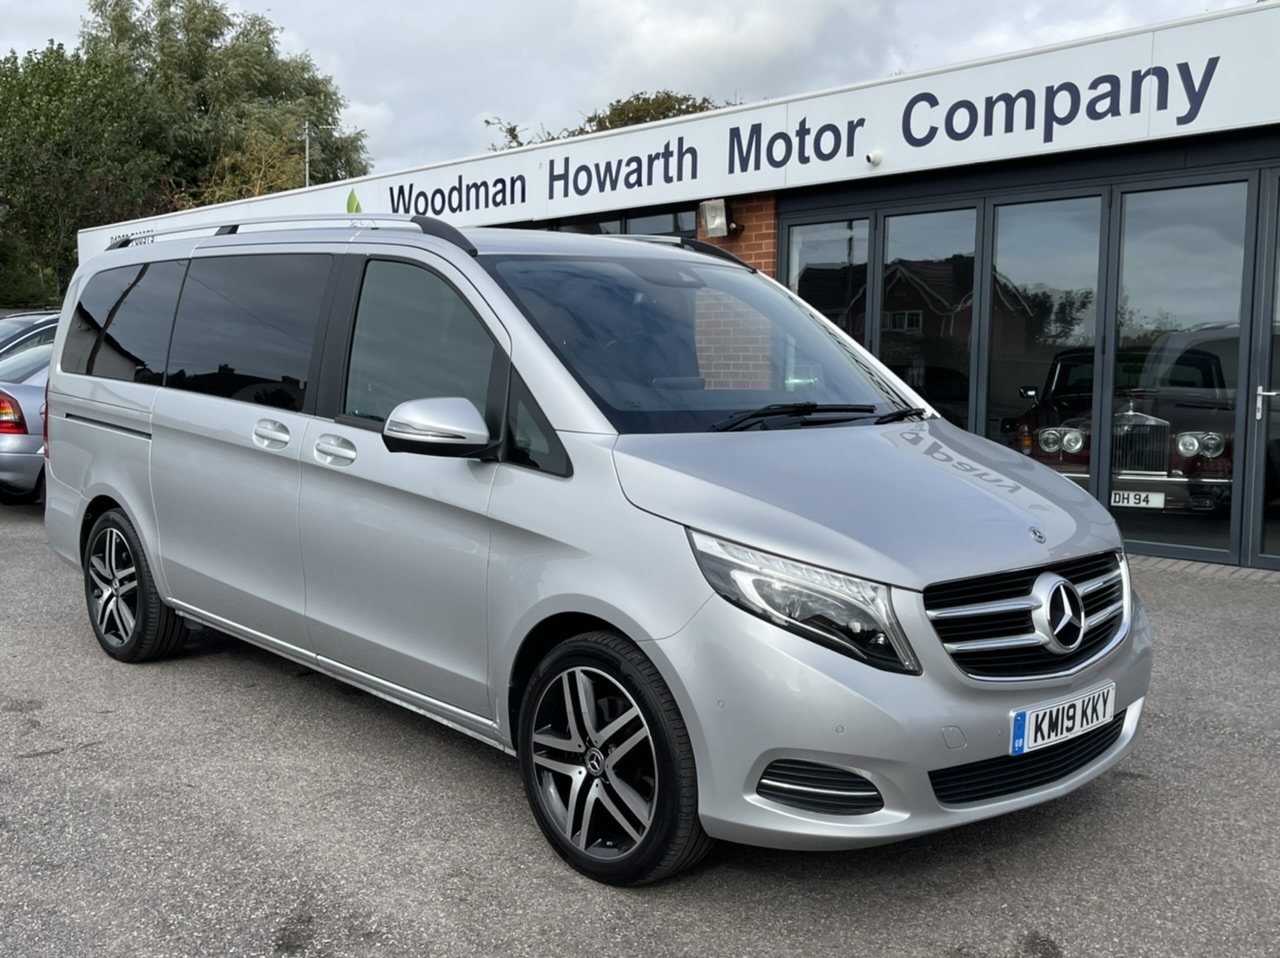 """2019 19 MERCEDES BENZ V220D 163BHP SPORT AUTO LWB - COMAND - Upgraded 19"""" A/W - Factory Tow Pack - Opening Rear Windows - Pan Roof"""